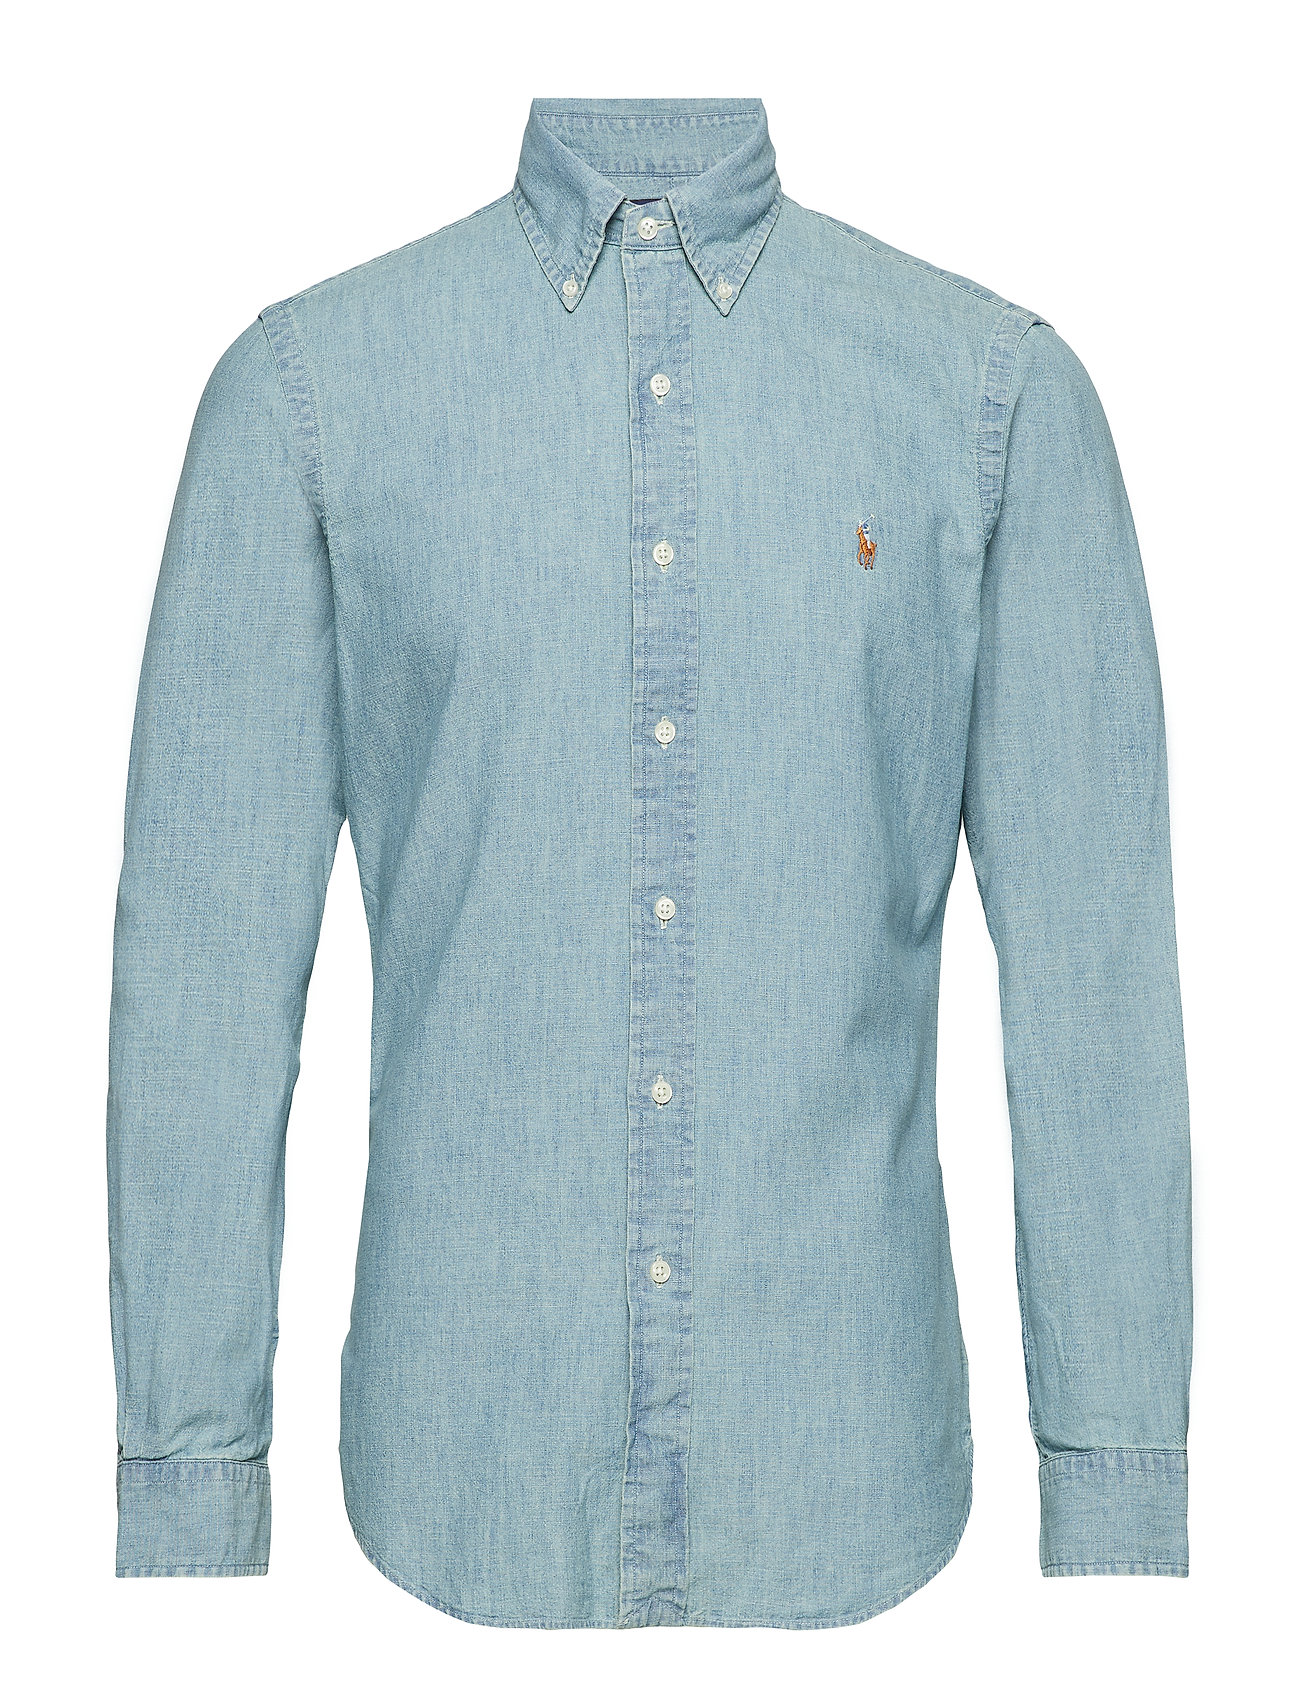 cffeaf75e9c Slim Fit Chambray Shirt (Medium Wash) (£109) - Polo Ralph Lauren ...